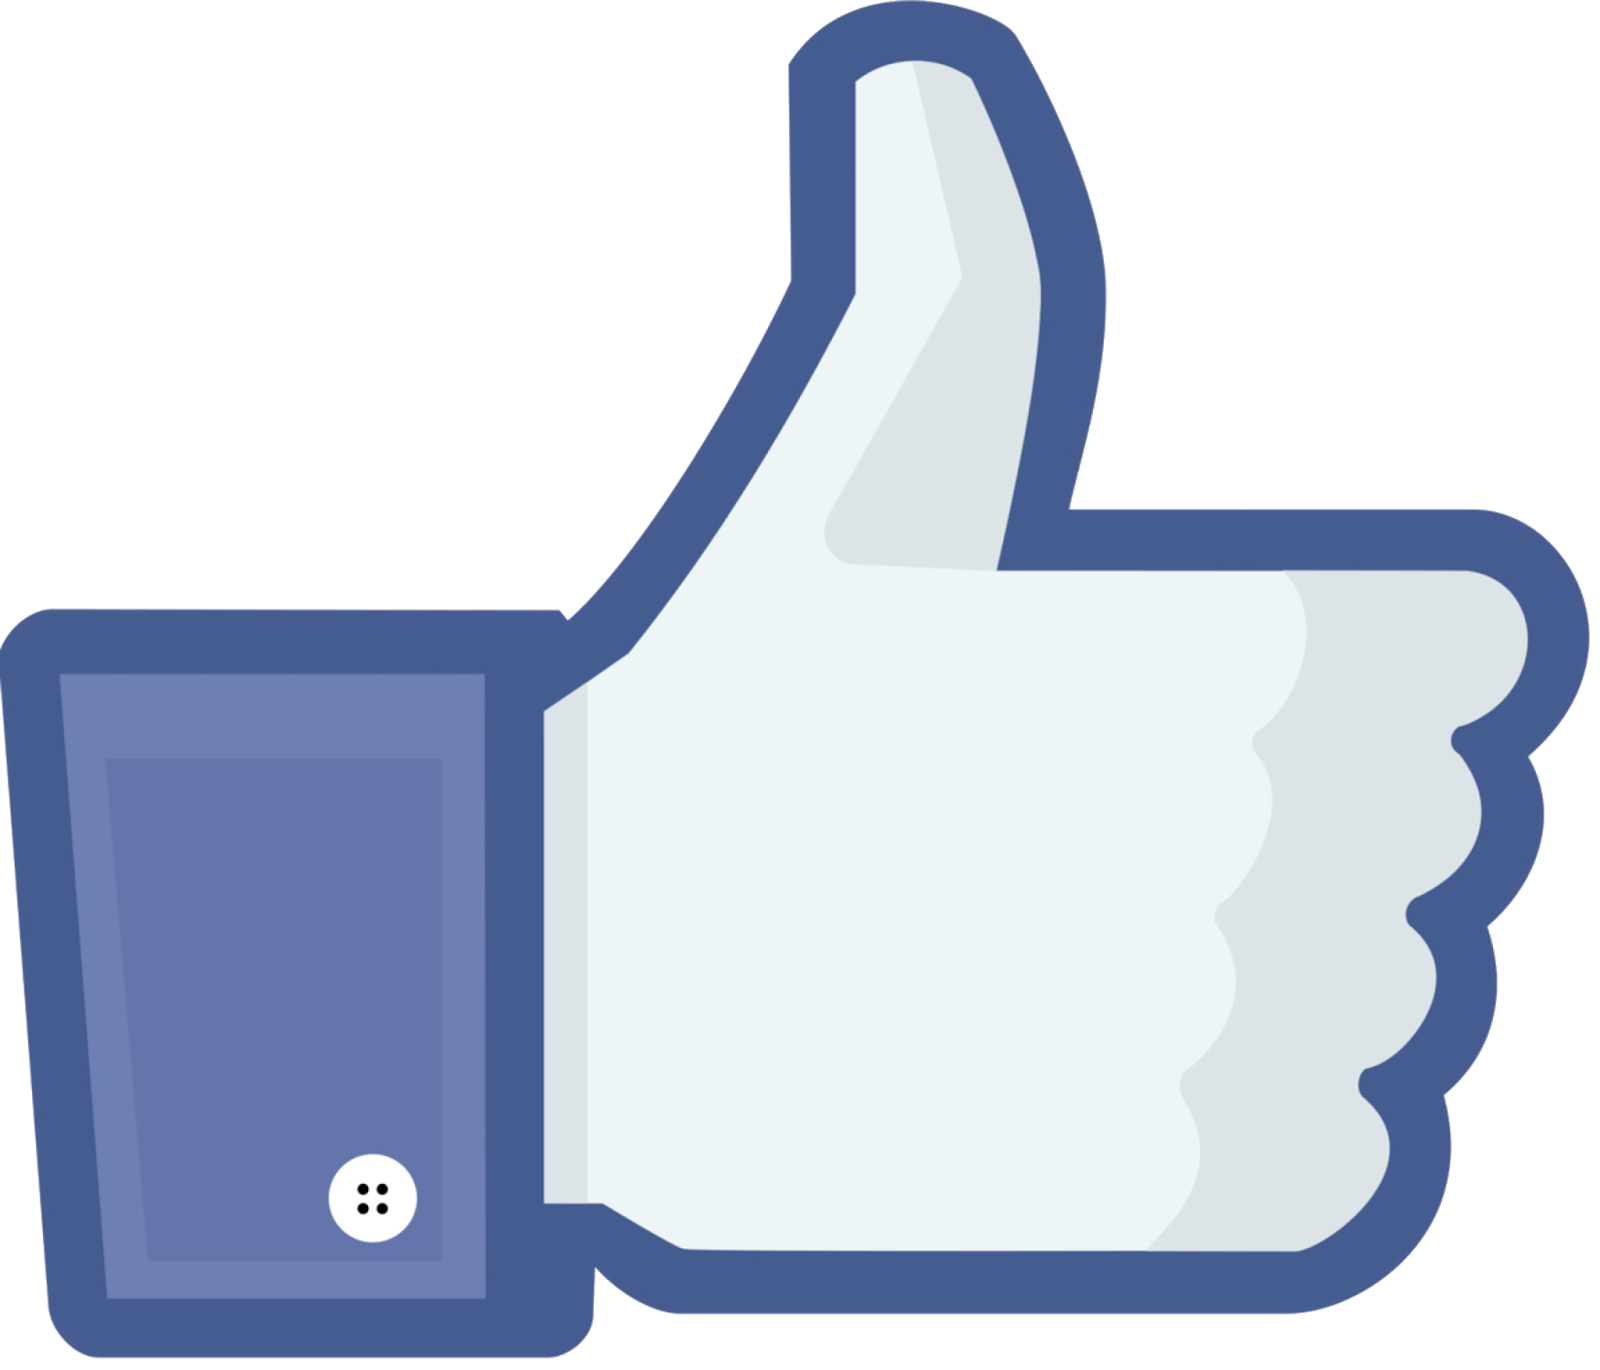 facebook logo like share png transparent background | Png ...